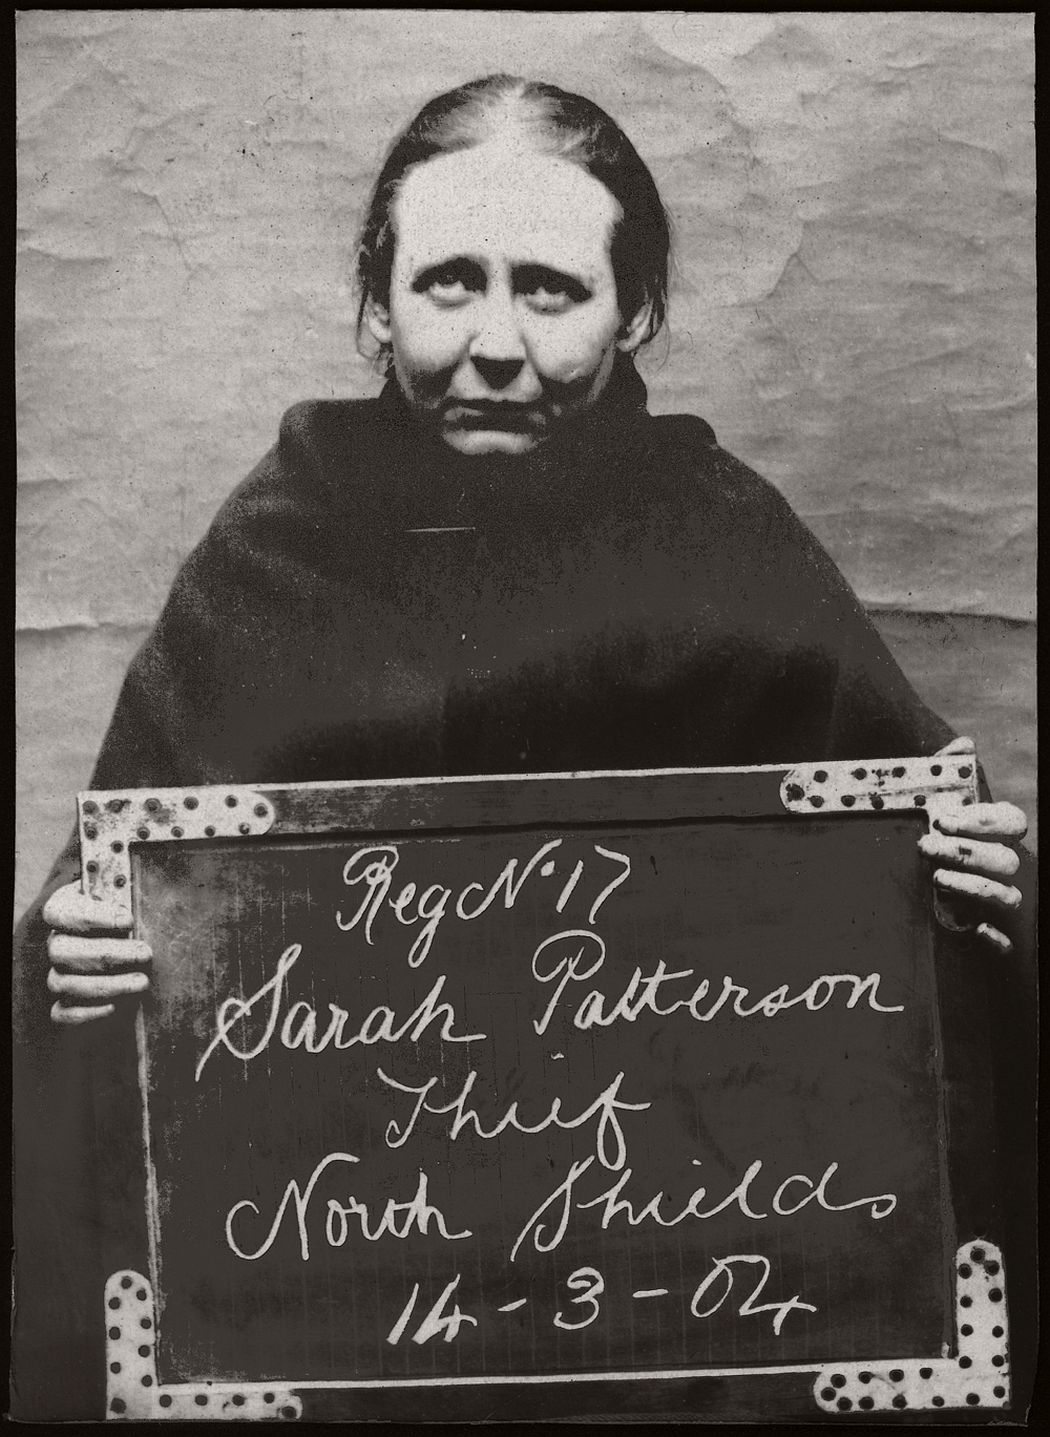 vintage-mug-shot-of-women-criminals-from-north-shields-1903-1905-13